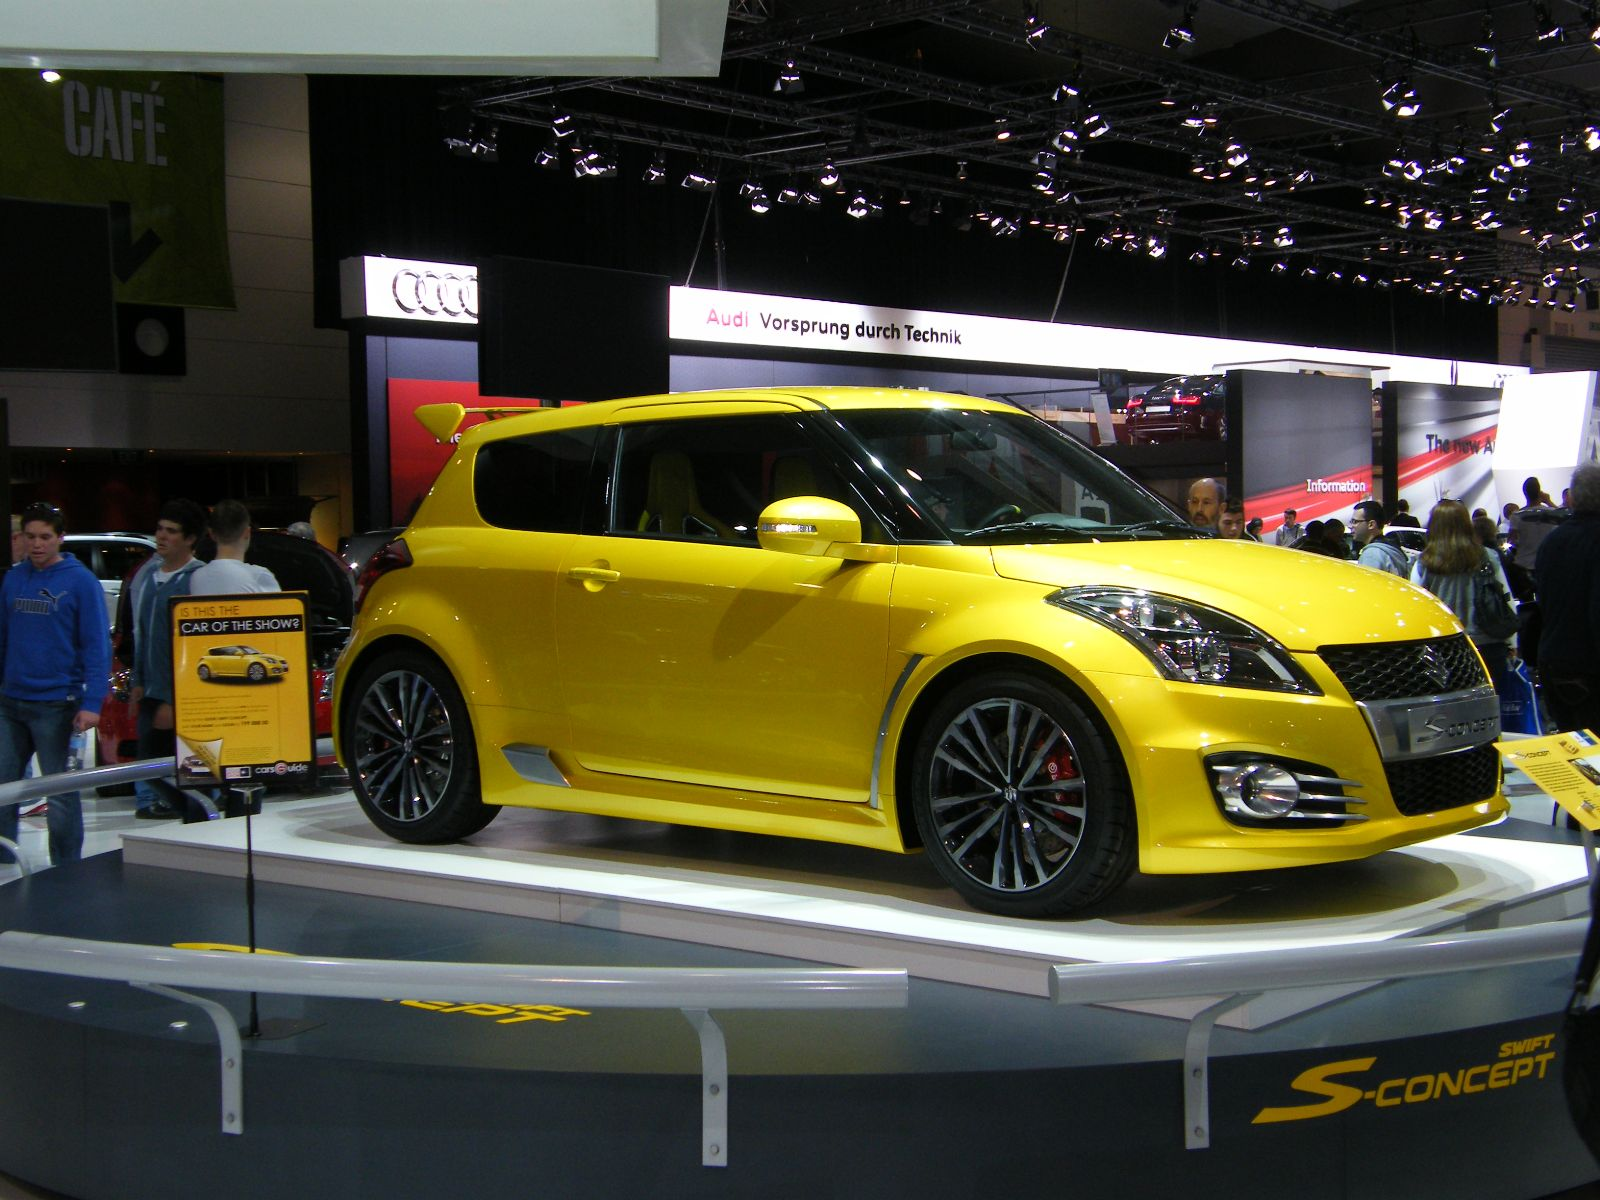 mau suzuki swift do xe